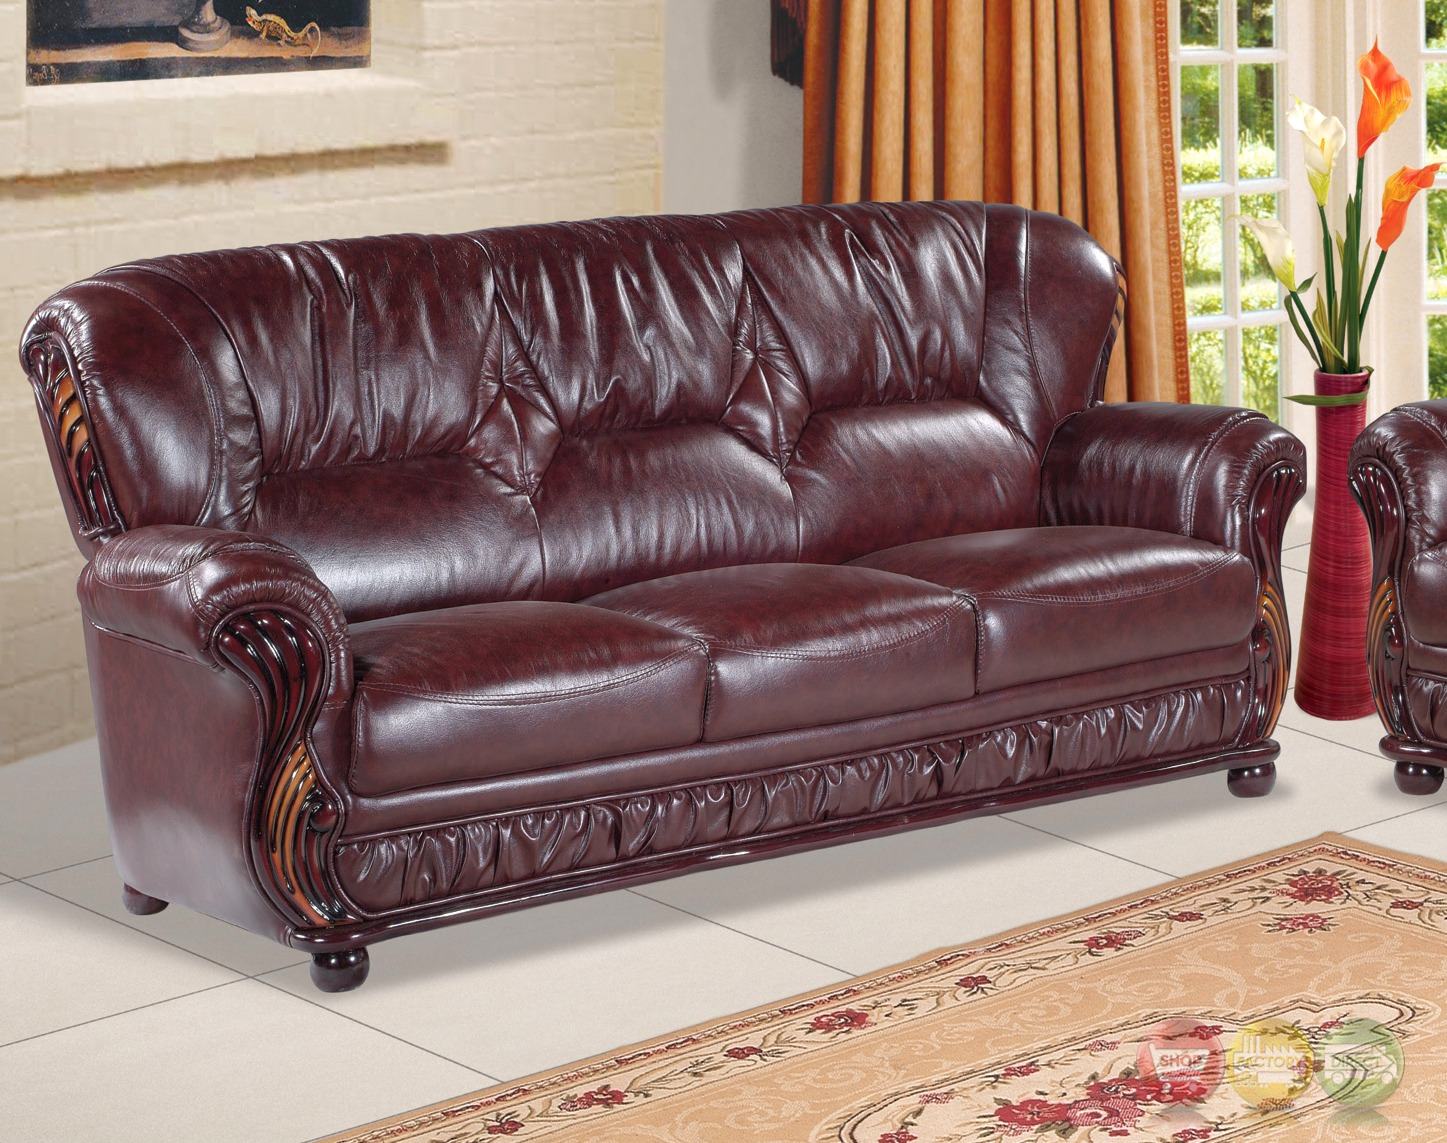 Mina burgundy leather italian sofa with wood accents Burgundy leather loveseat